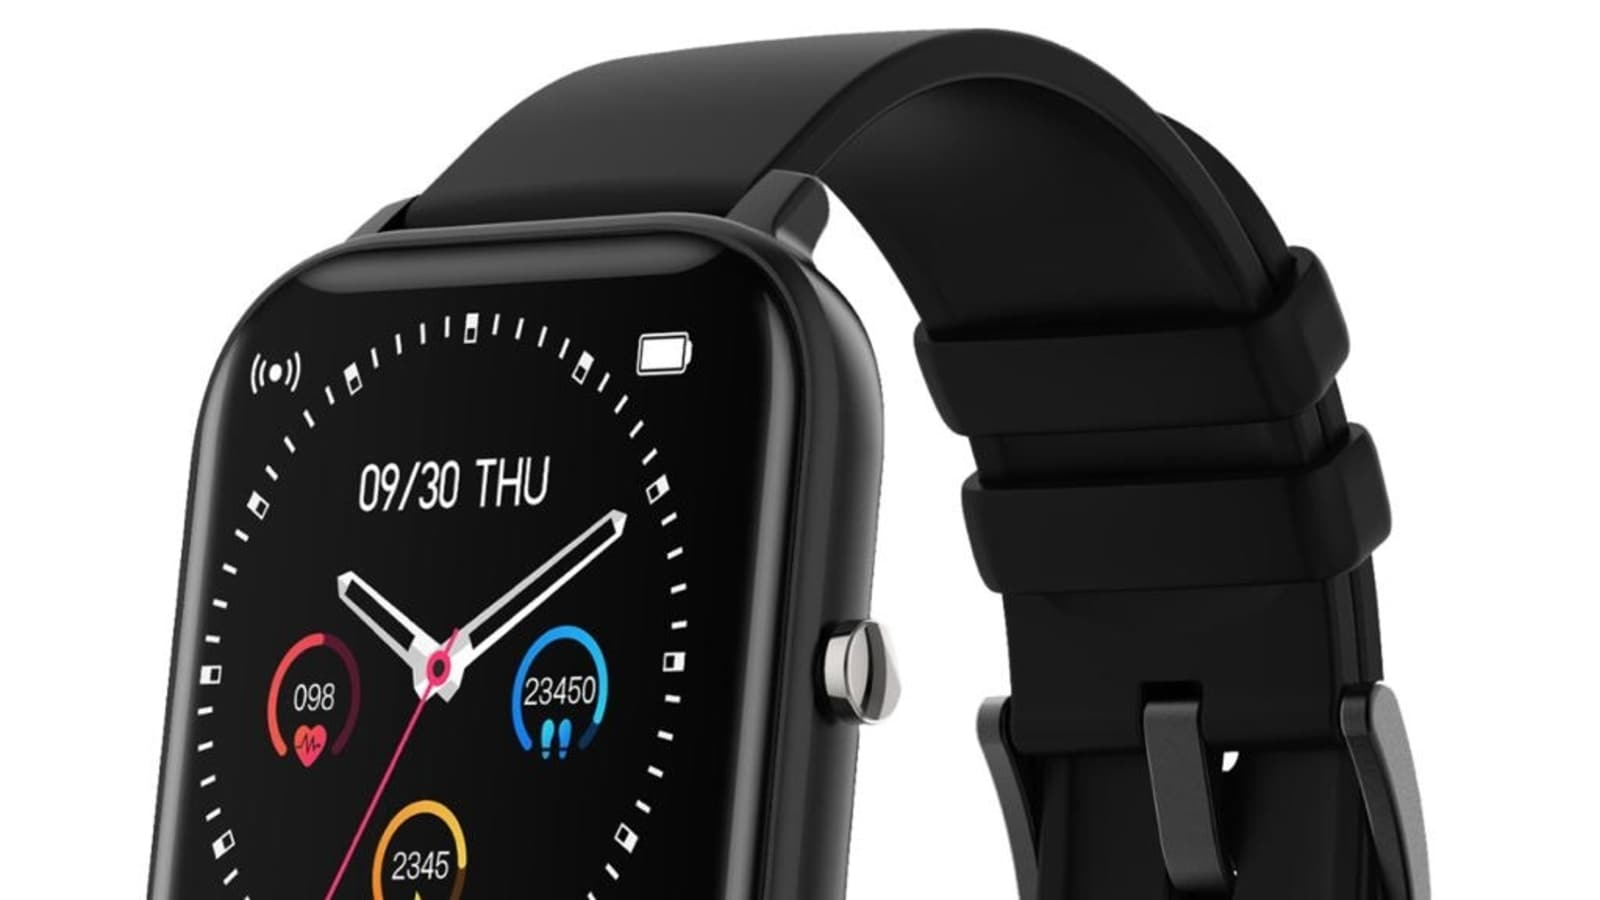 Fire-Boltt Agni priced 99 2,999 at launch;  the smartwatch provides SPO2 monitoring, menstrual monitoring and more